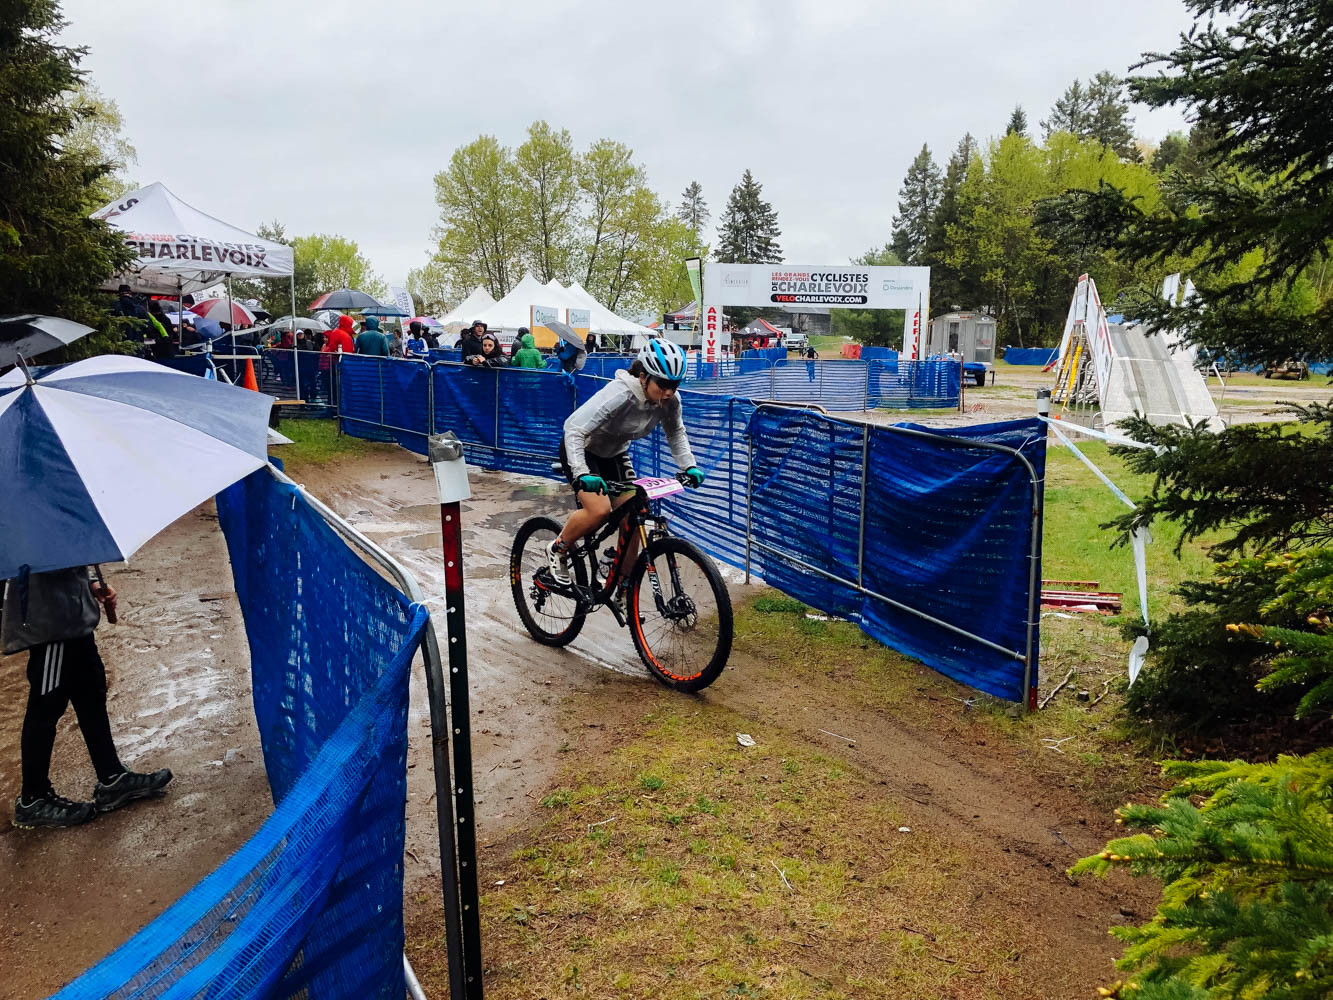 The XCT on Sunday in Baie St-Paul was pretty muddy. Aïsha slid under the tape, but got back on the bike and finished strong. Mara was there to cheer for her team!